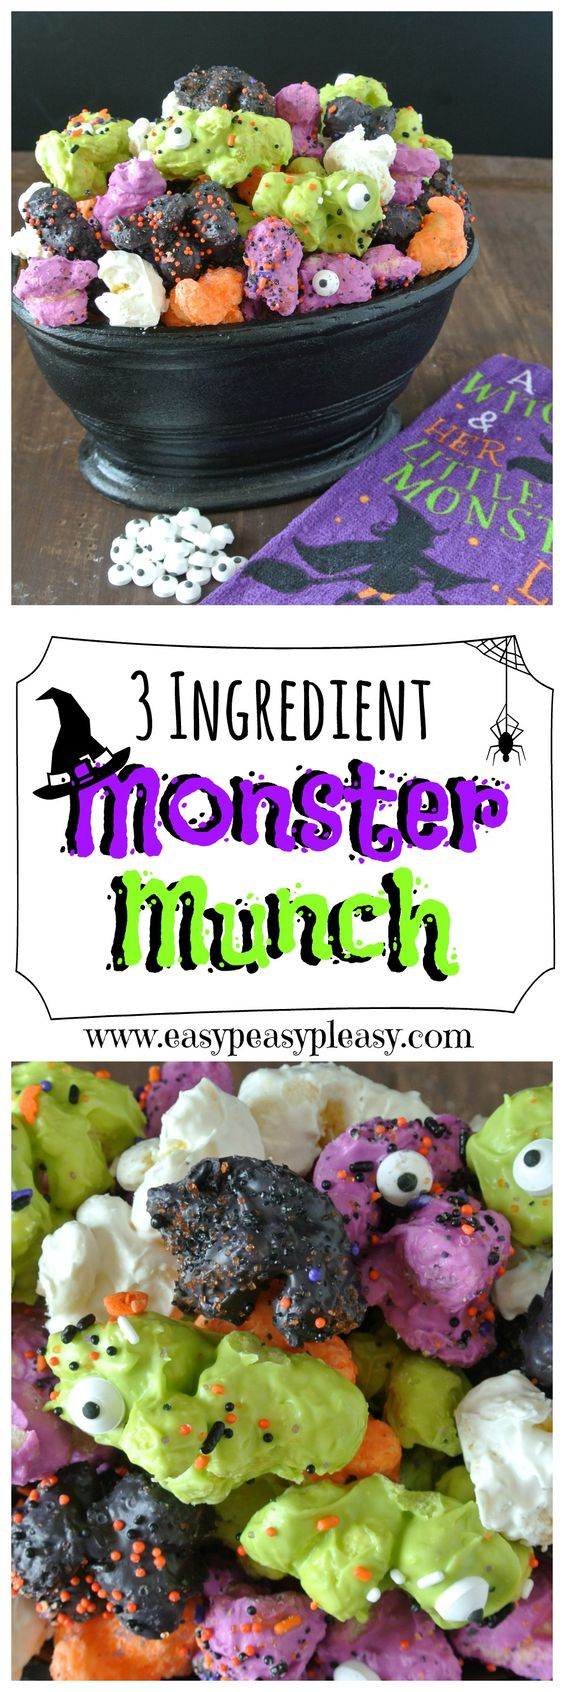 3 Ingredient Easy Monster Munch Halloween Treat Recipe | Easy Peasy Pleasy - No popcorn here...3 Ingredient Monster Munch is the perfect Halloween Treat!